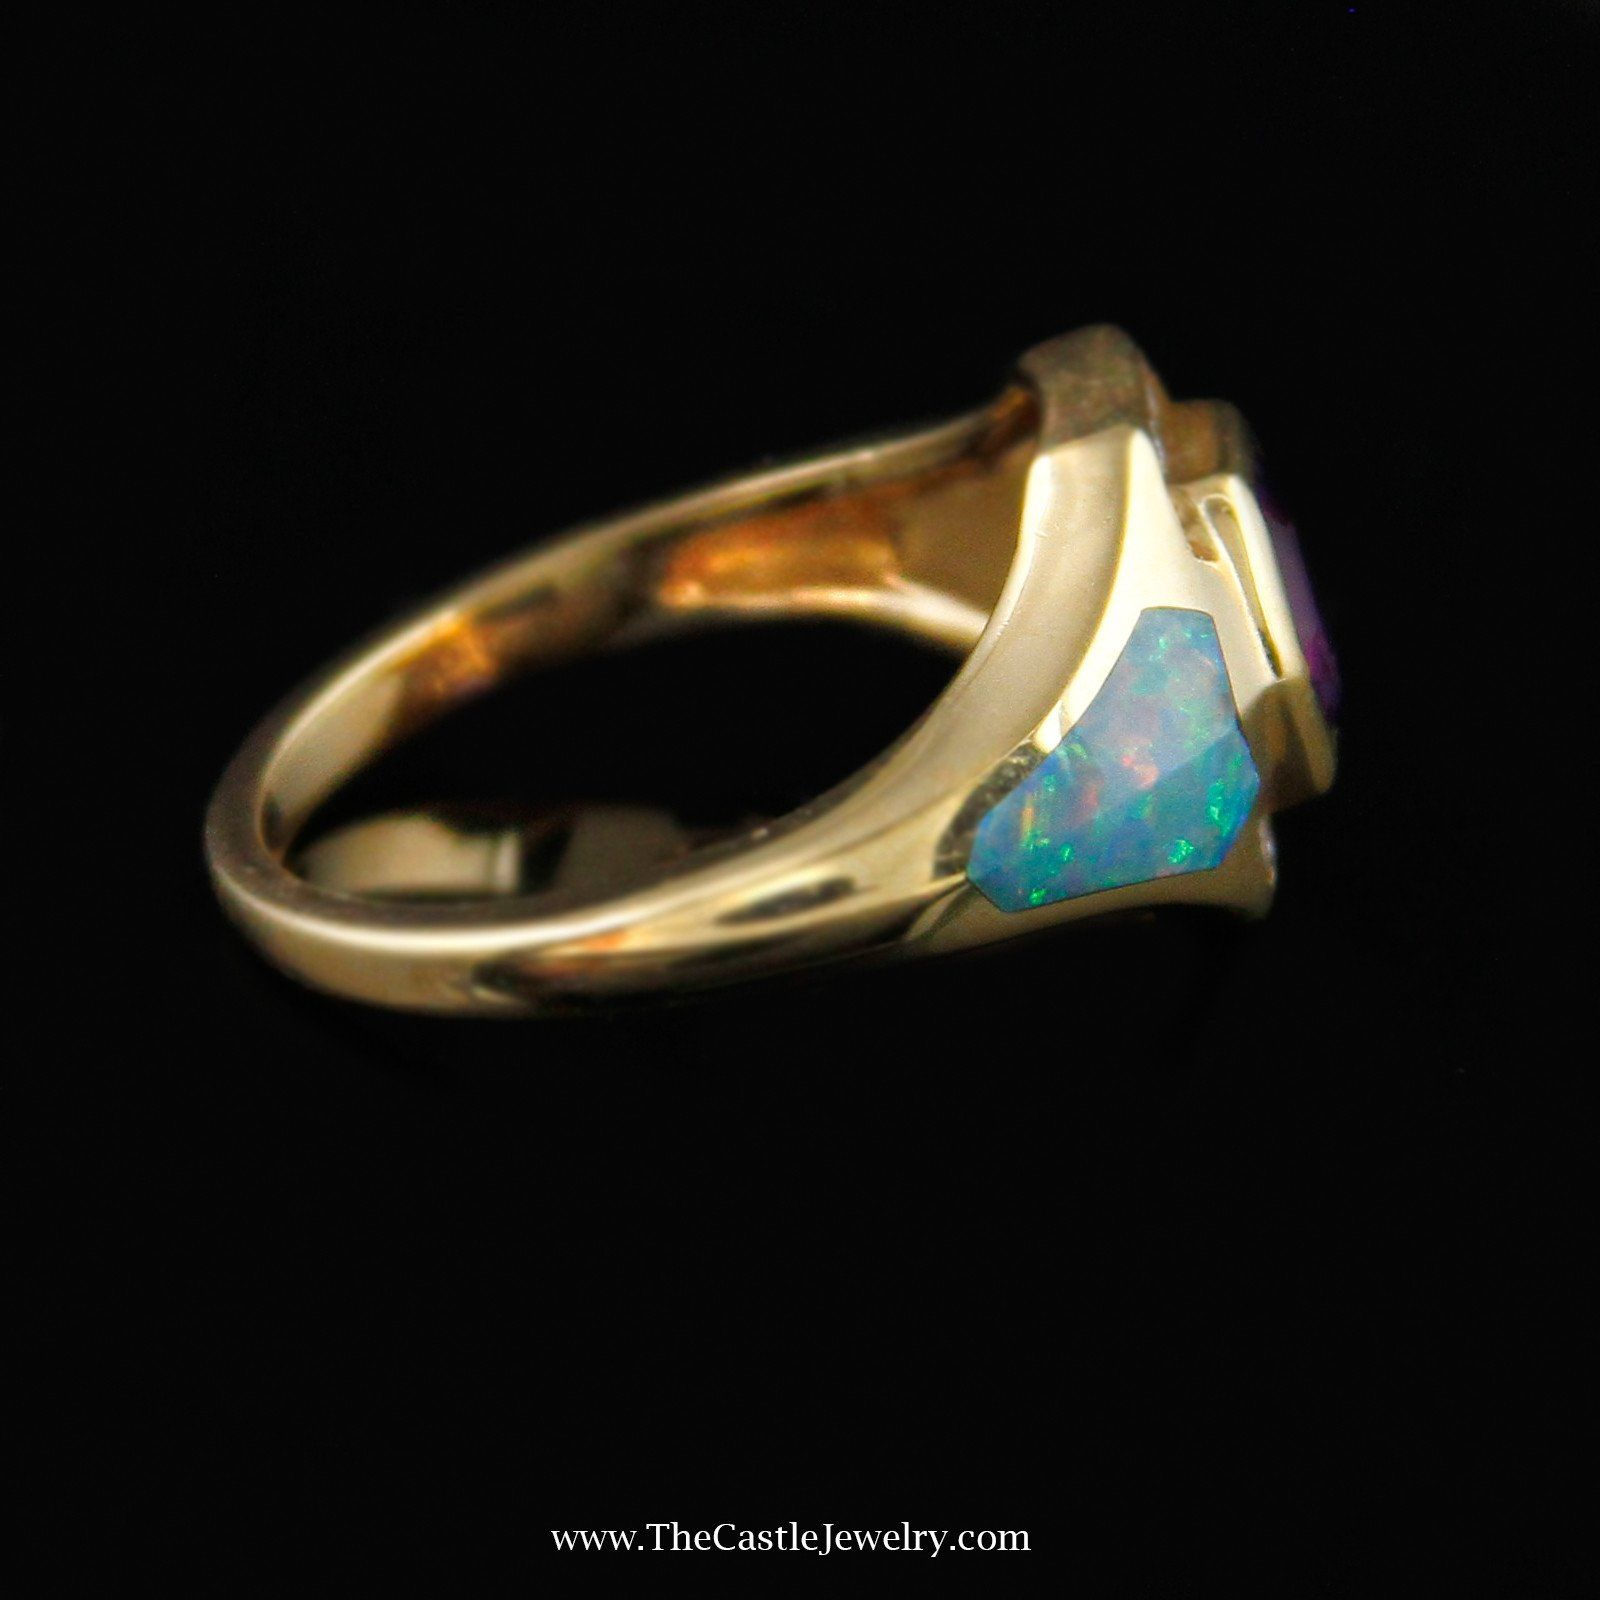 Designer Kabana Ring, Fancy Cut Amethyst & Opal Inlay Accents in 14K Yellow Gold